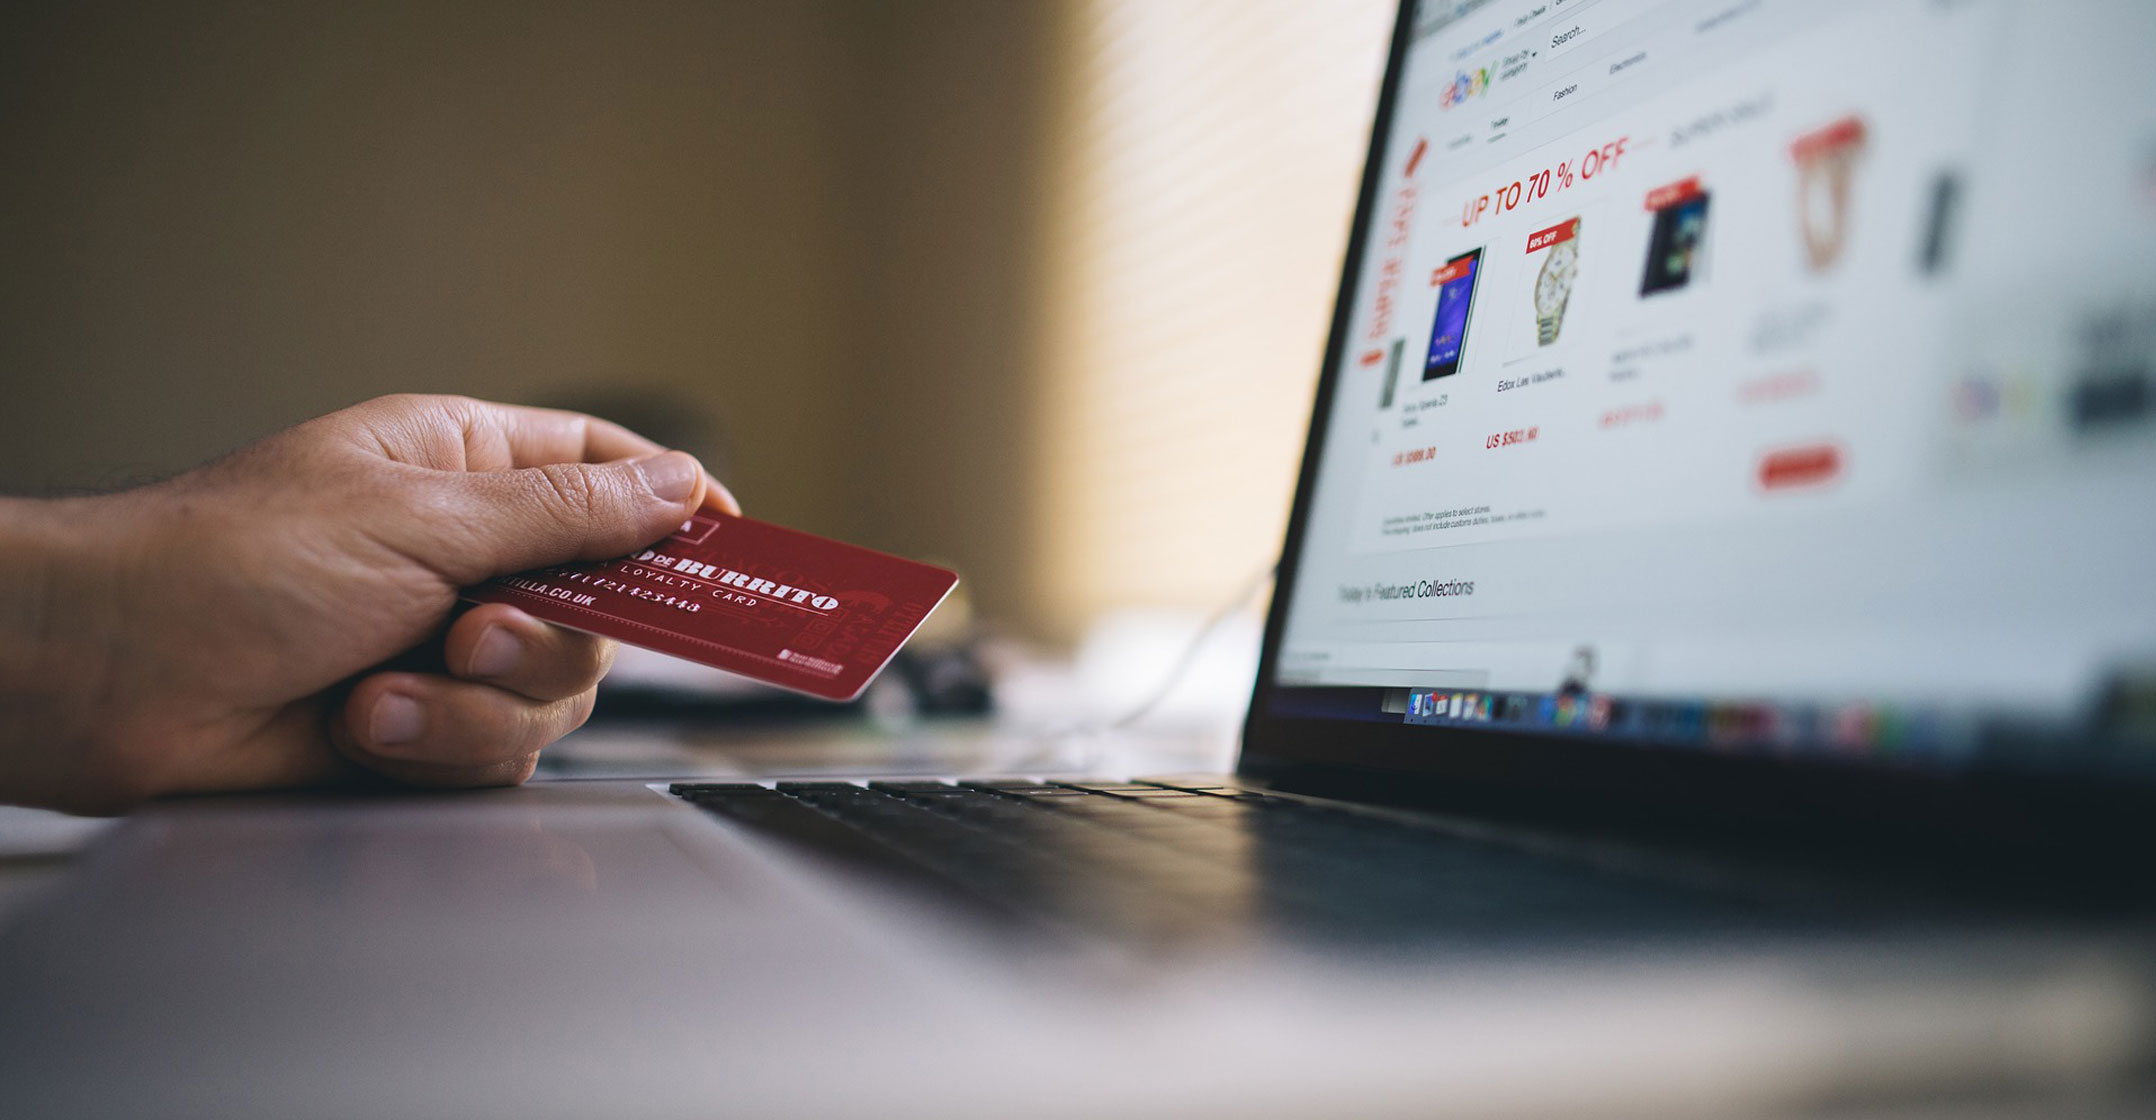 E-commerce growth in South Africa outstripping forecasts - TechCentral